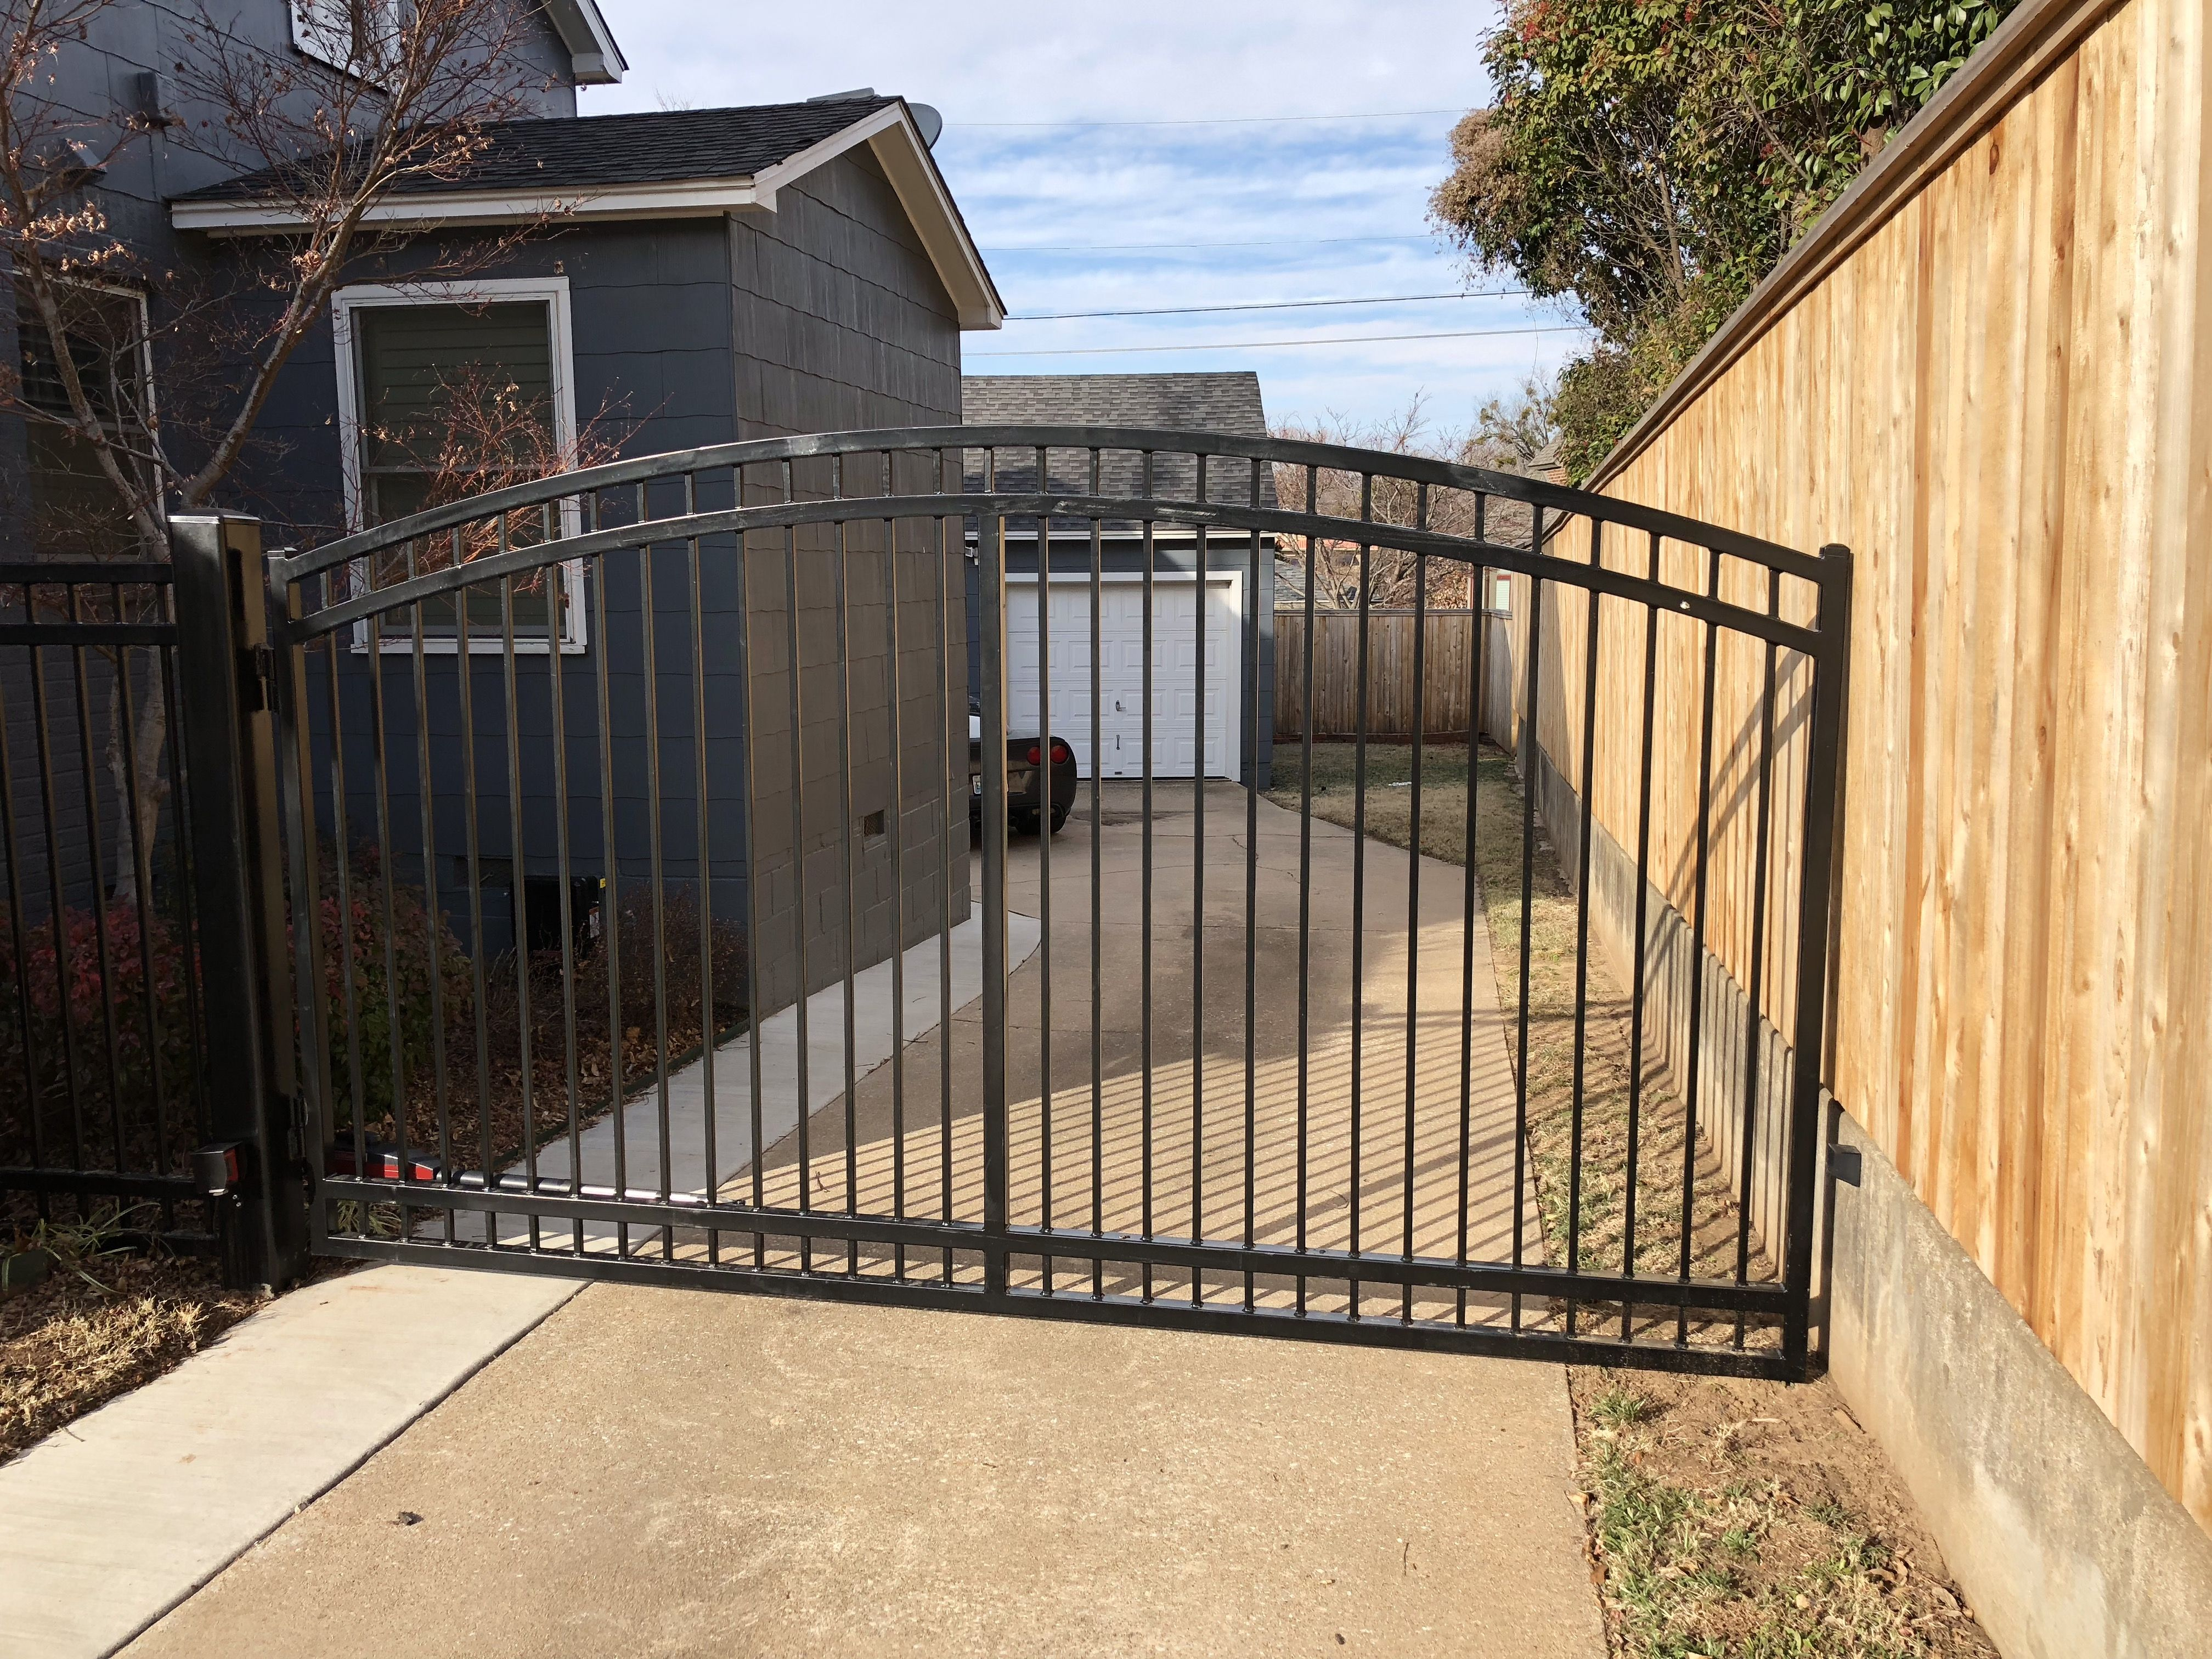 Midtown Tulsa Arched Driveway Gate House Front Gate Gate Gate Operators